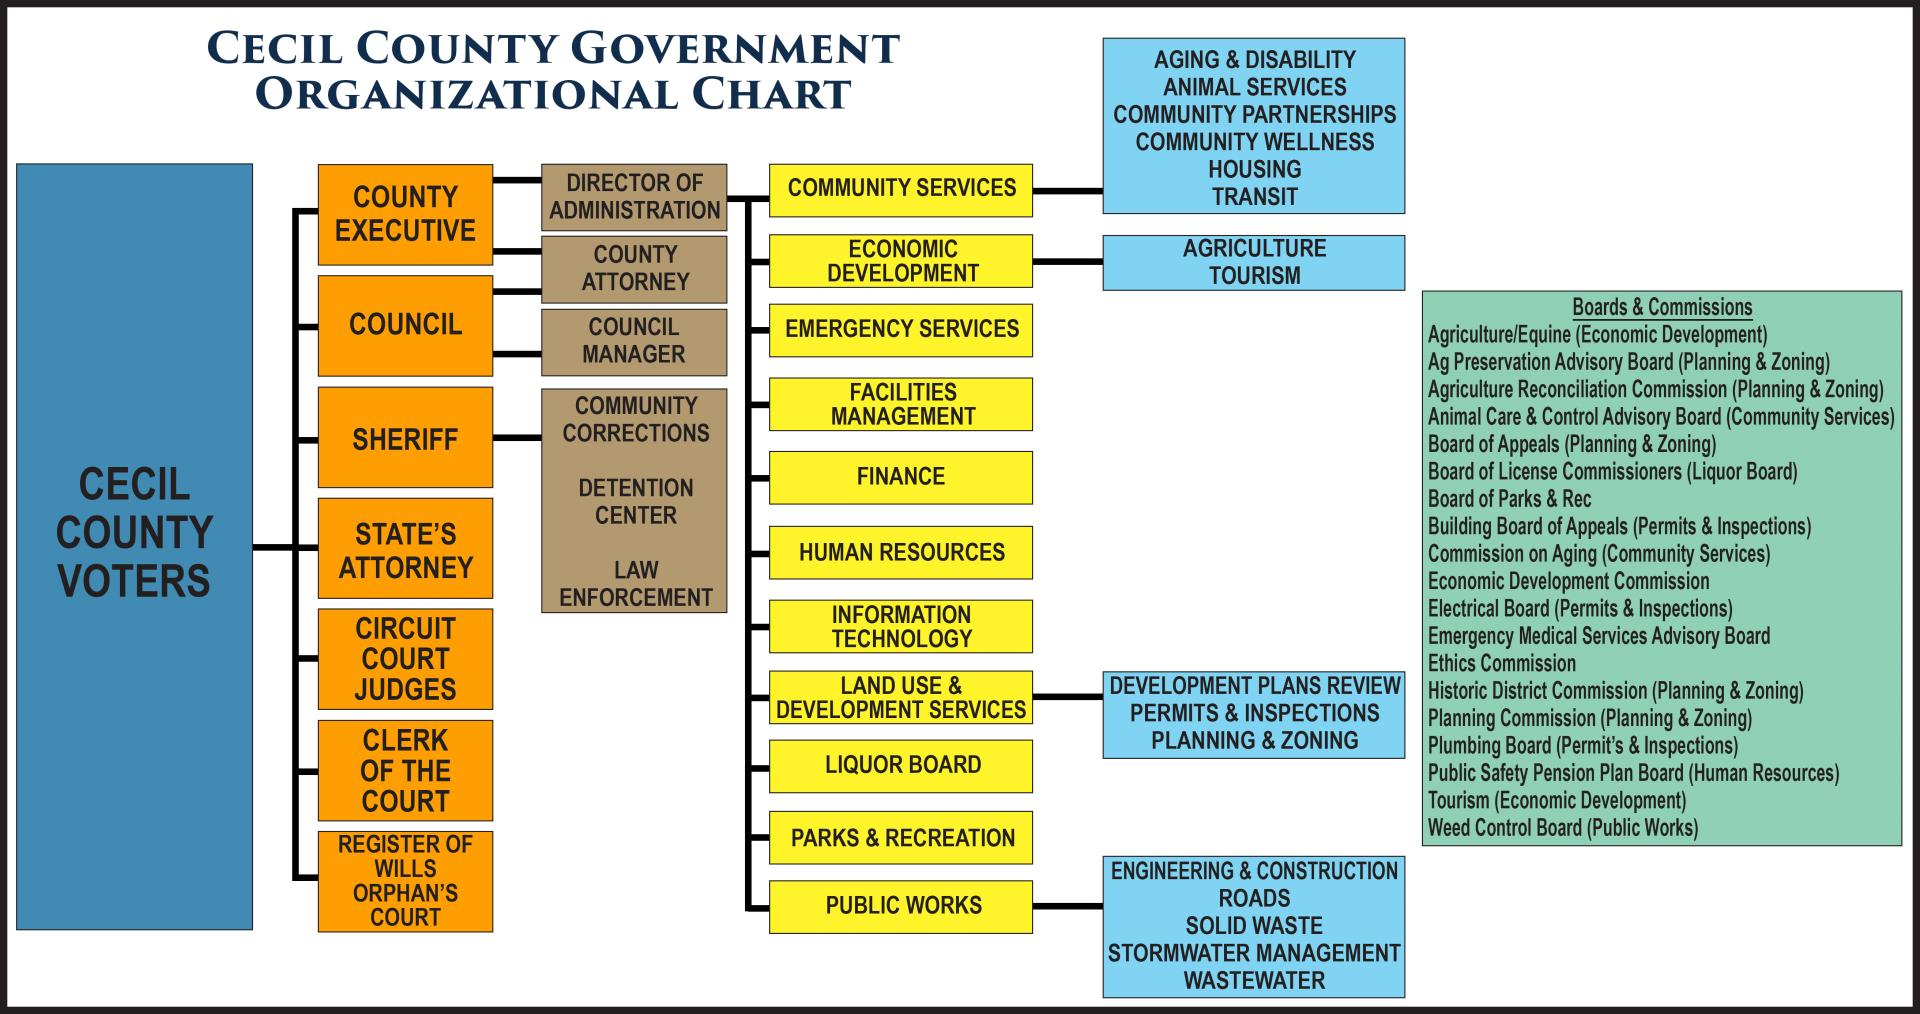 CECIL CO GOV ORG CHART 0717